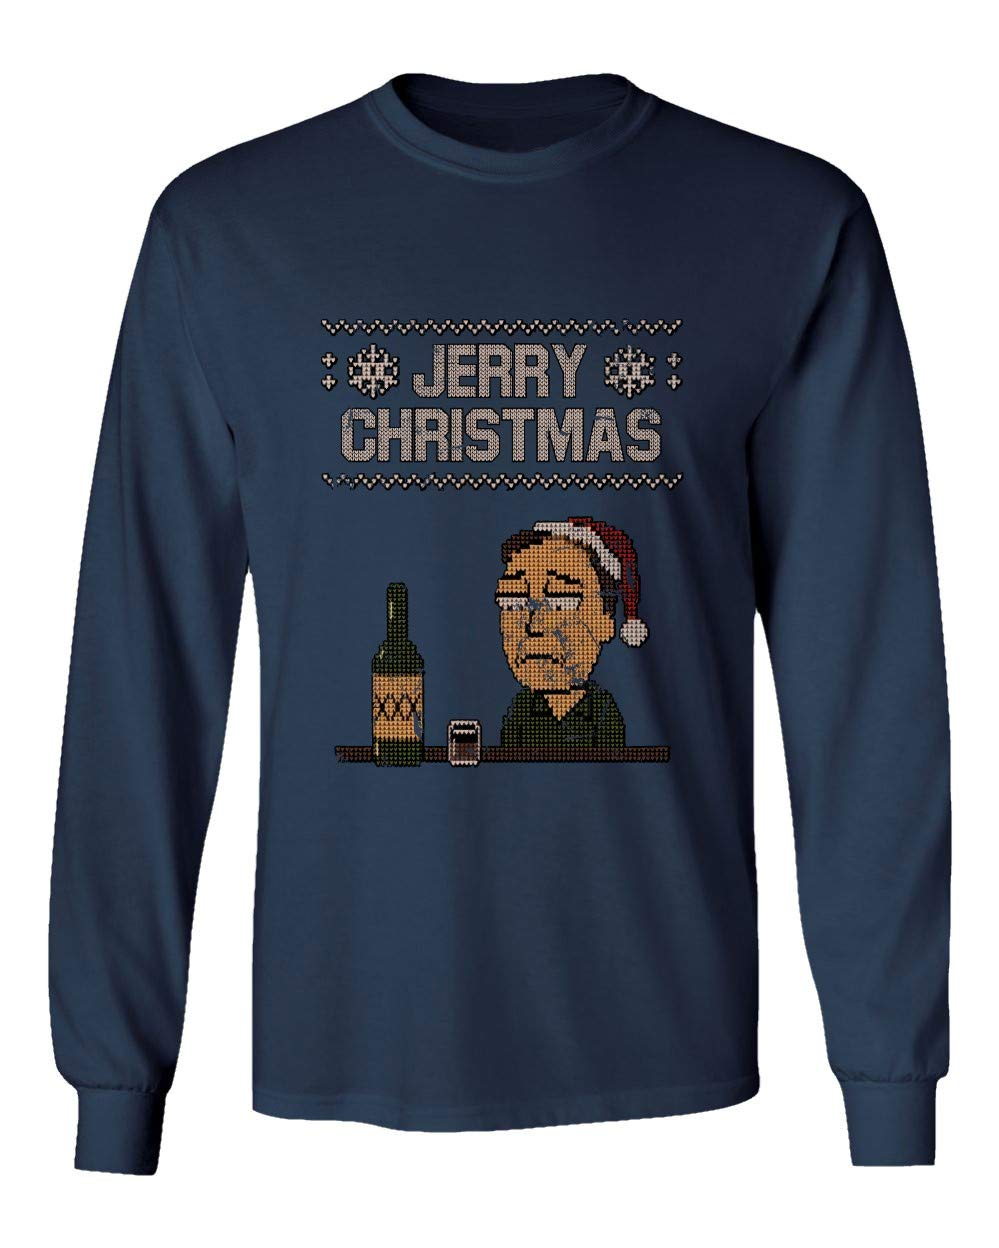 New Graphic Tee Rick Morty Shirt Jerry Christmas Graphic S Tshirt